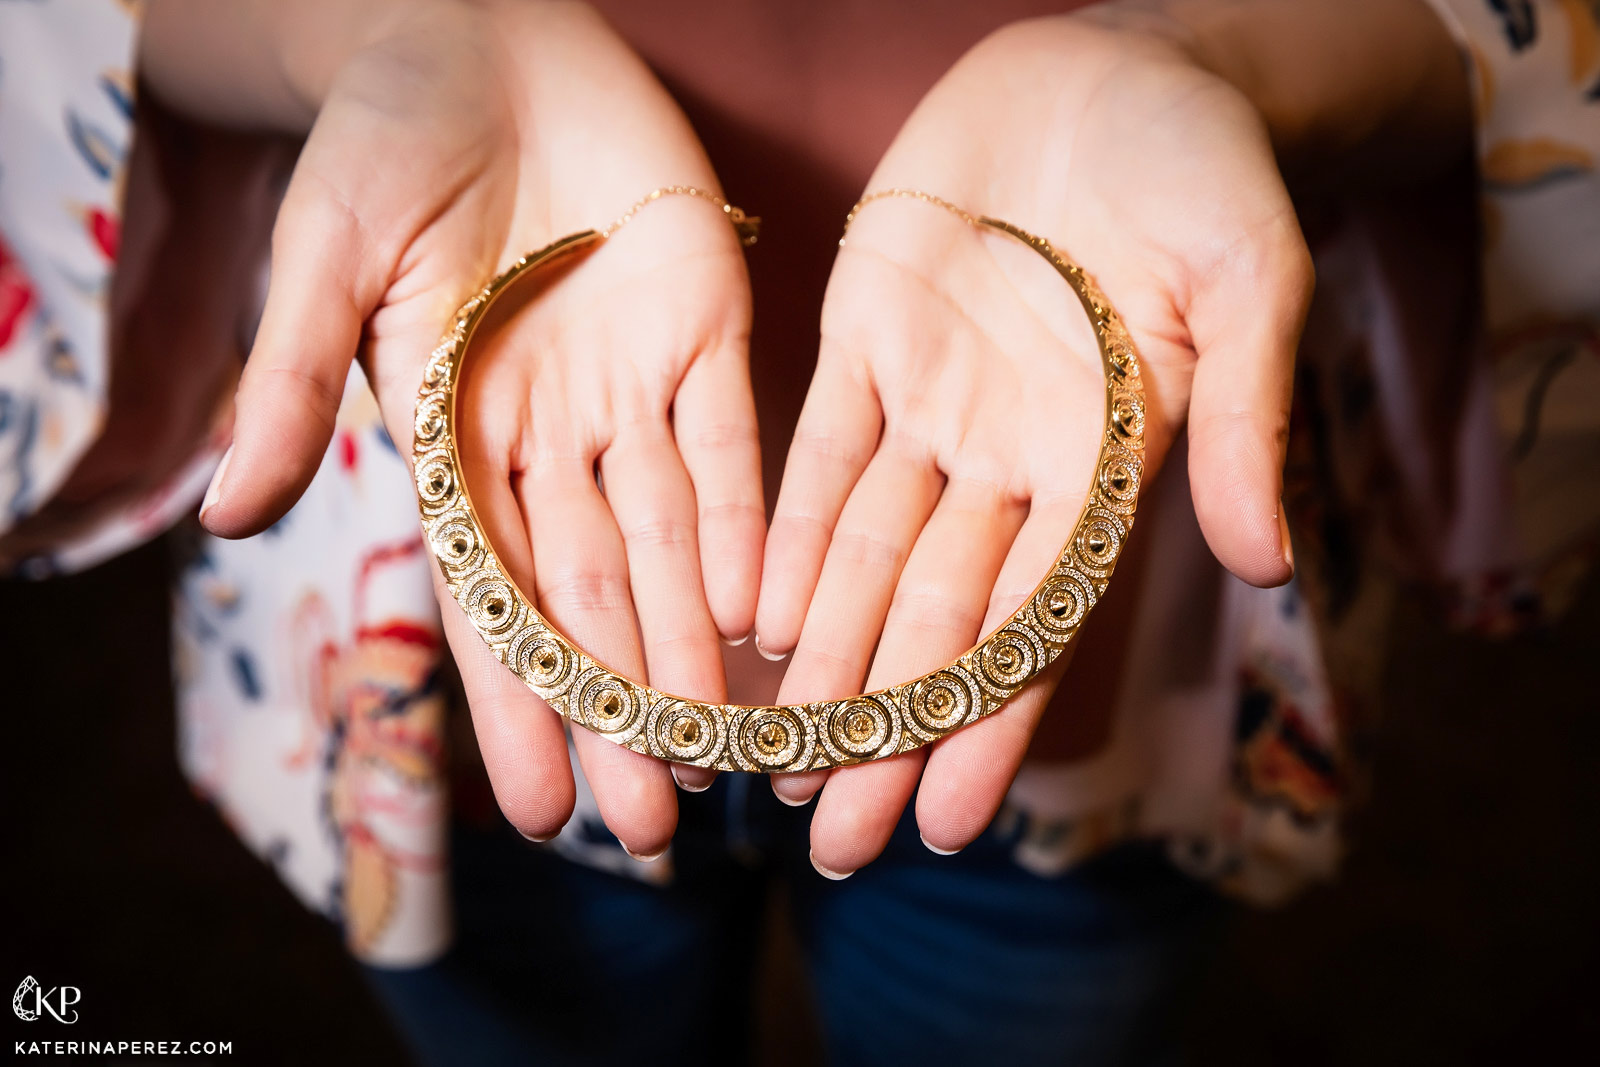 Vanleles Sahara chocker in yellow gold and diamonds. Photo by Simon Martner